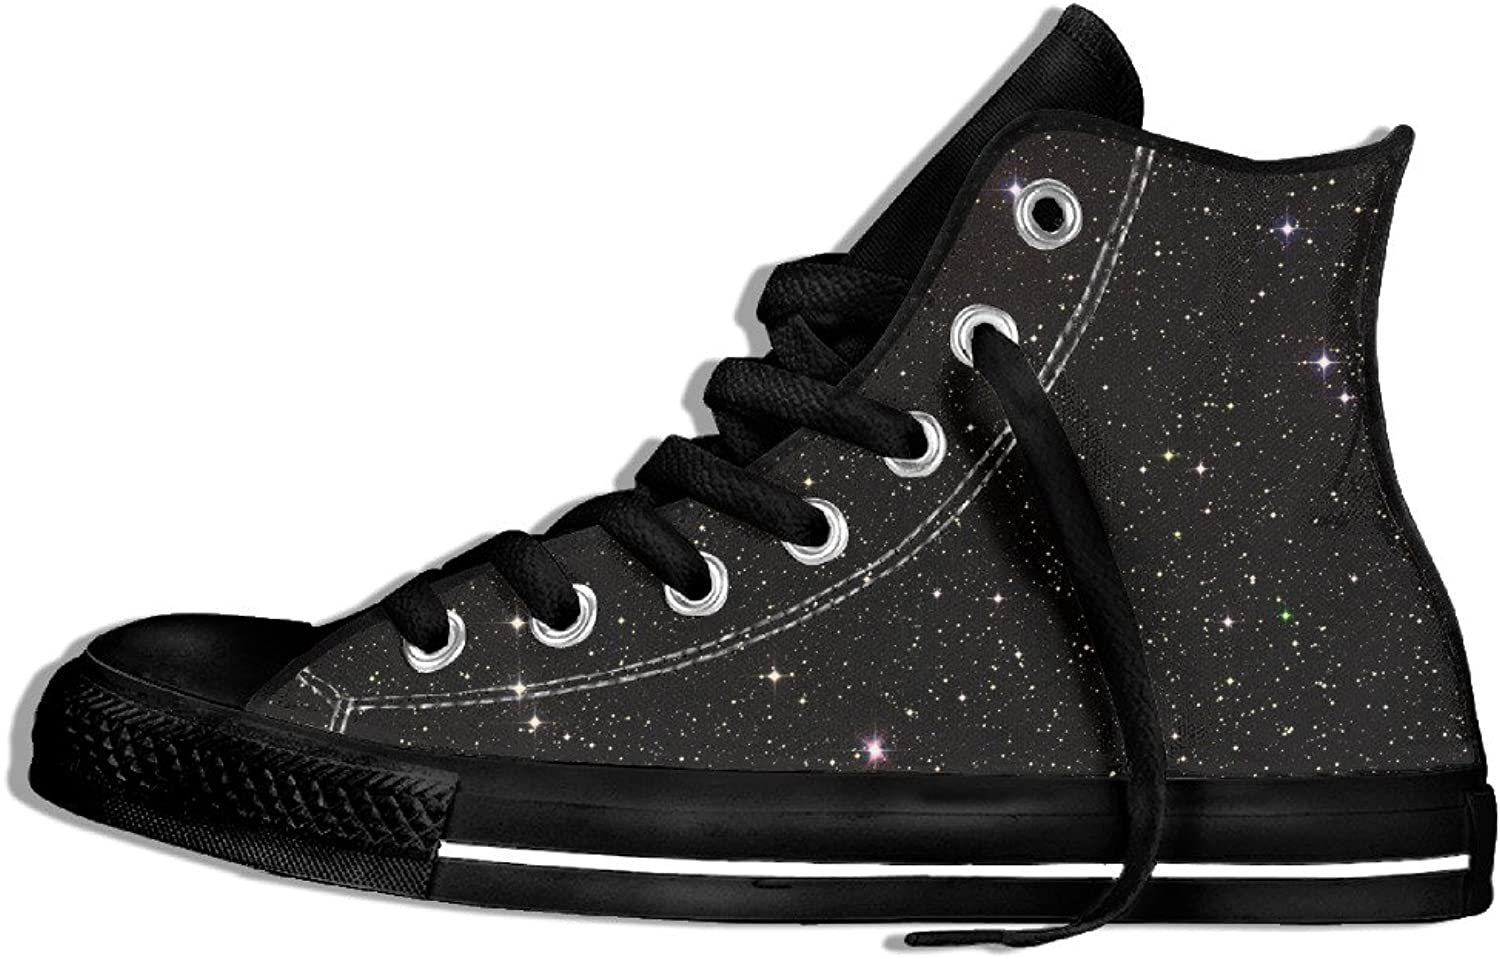 Efbj Stars Background Unisex Fashion High Top Canvas shoes Sneakers for Men and Women